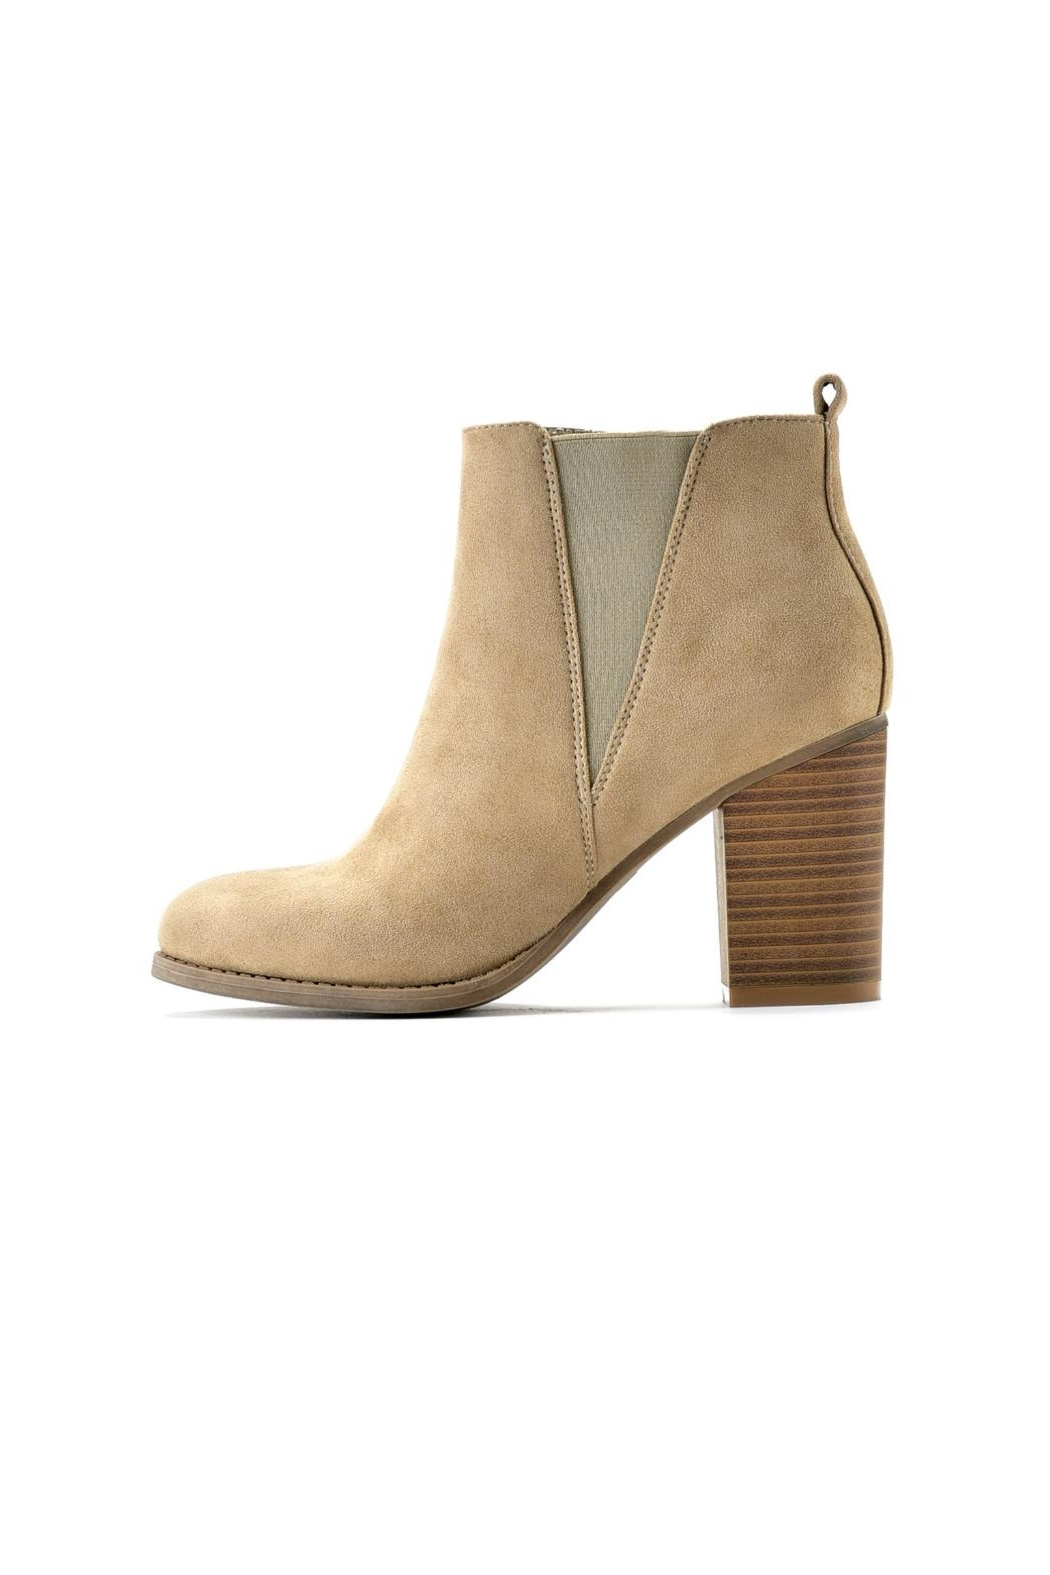 Charlie Paige Zippered Ankle Bootie - Main Image